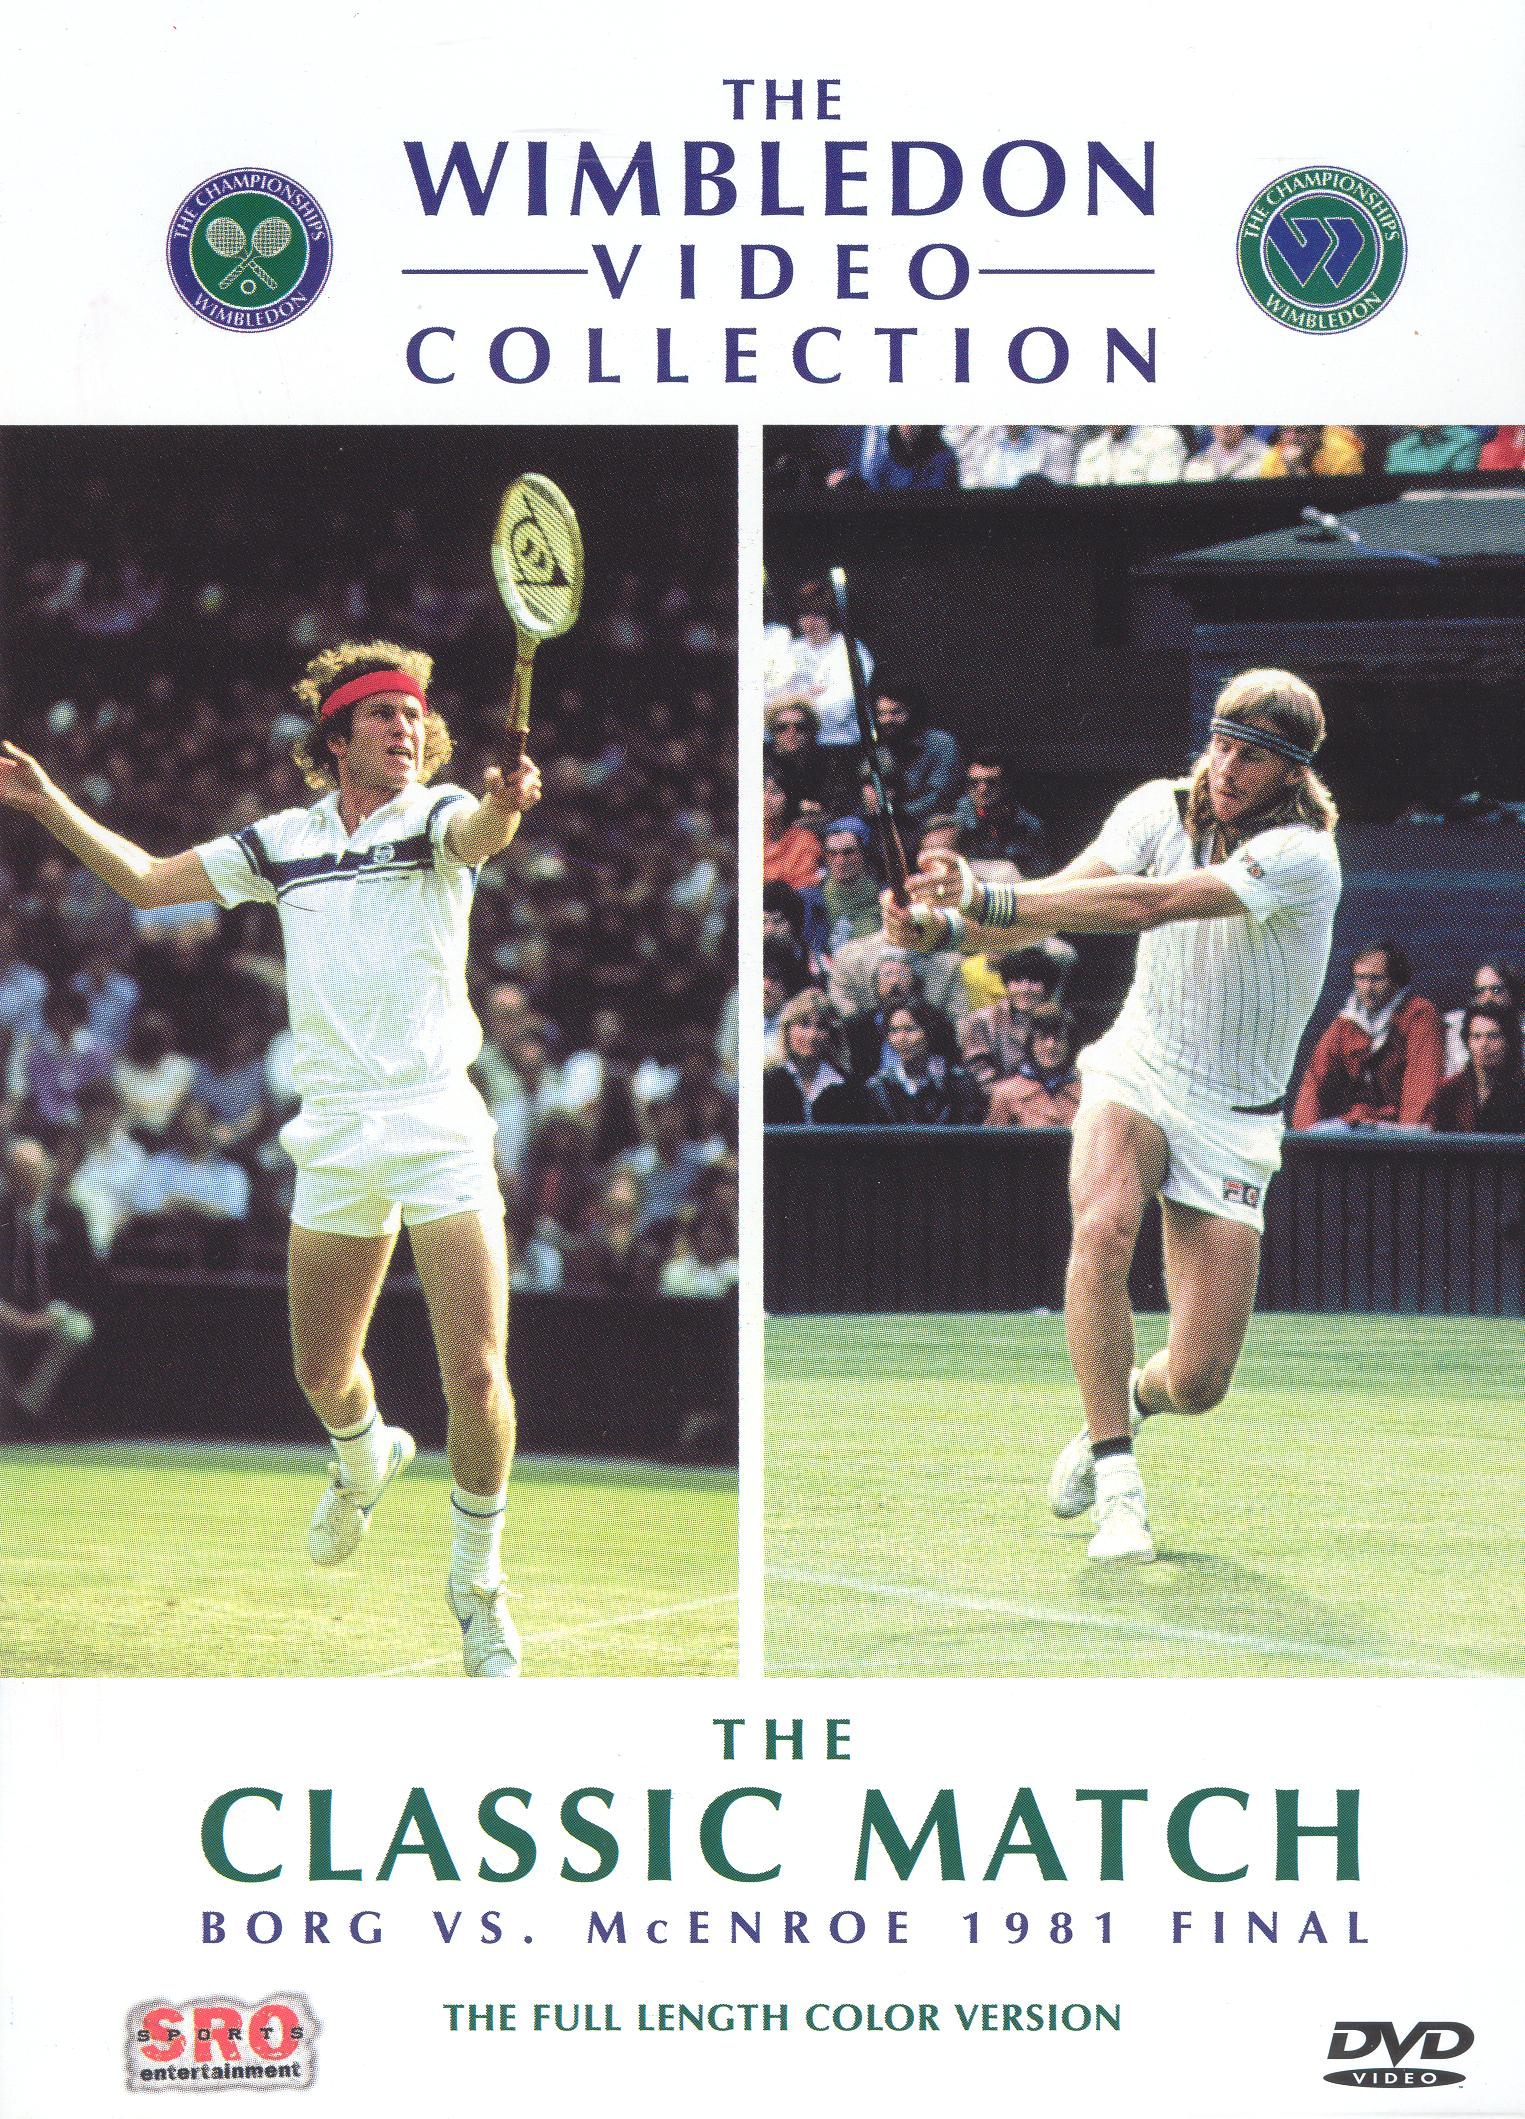 The Wimbledon Video Collection: The Classic Match - Borg vs. McEnroe 1981 Final